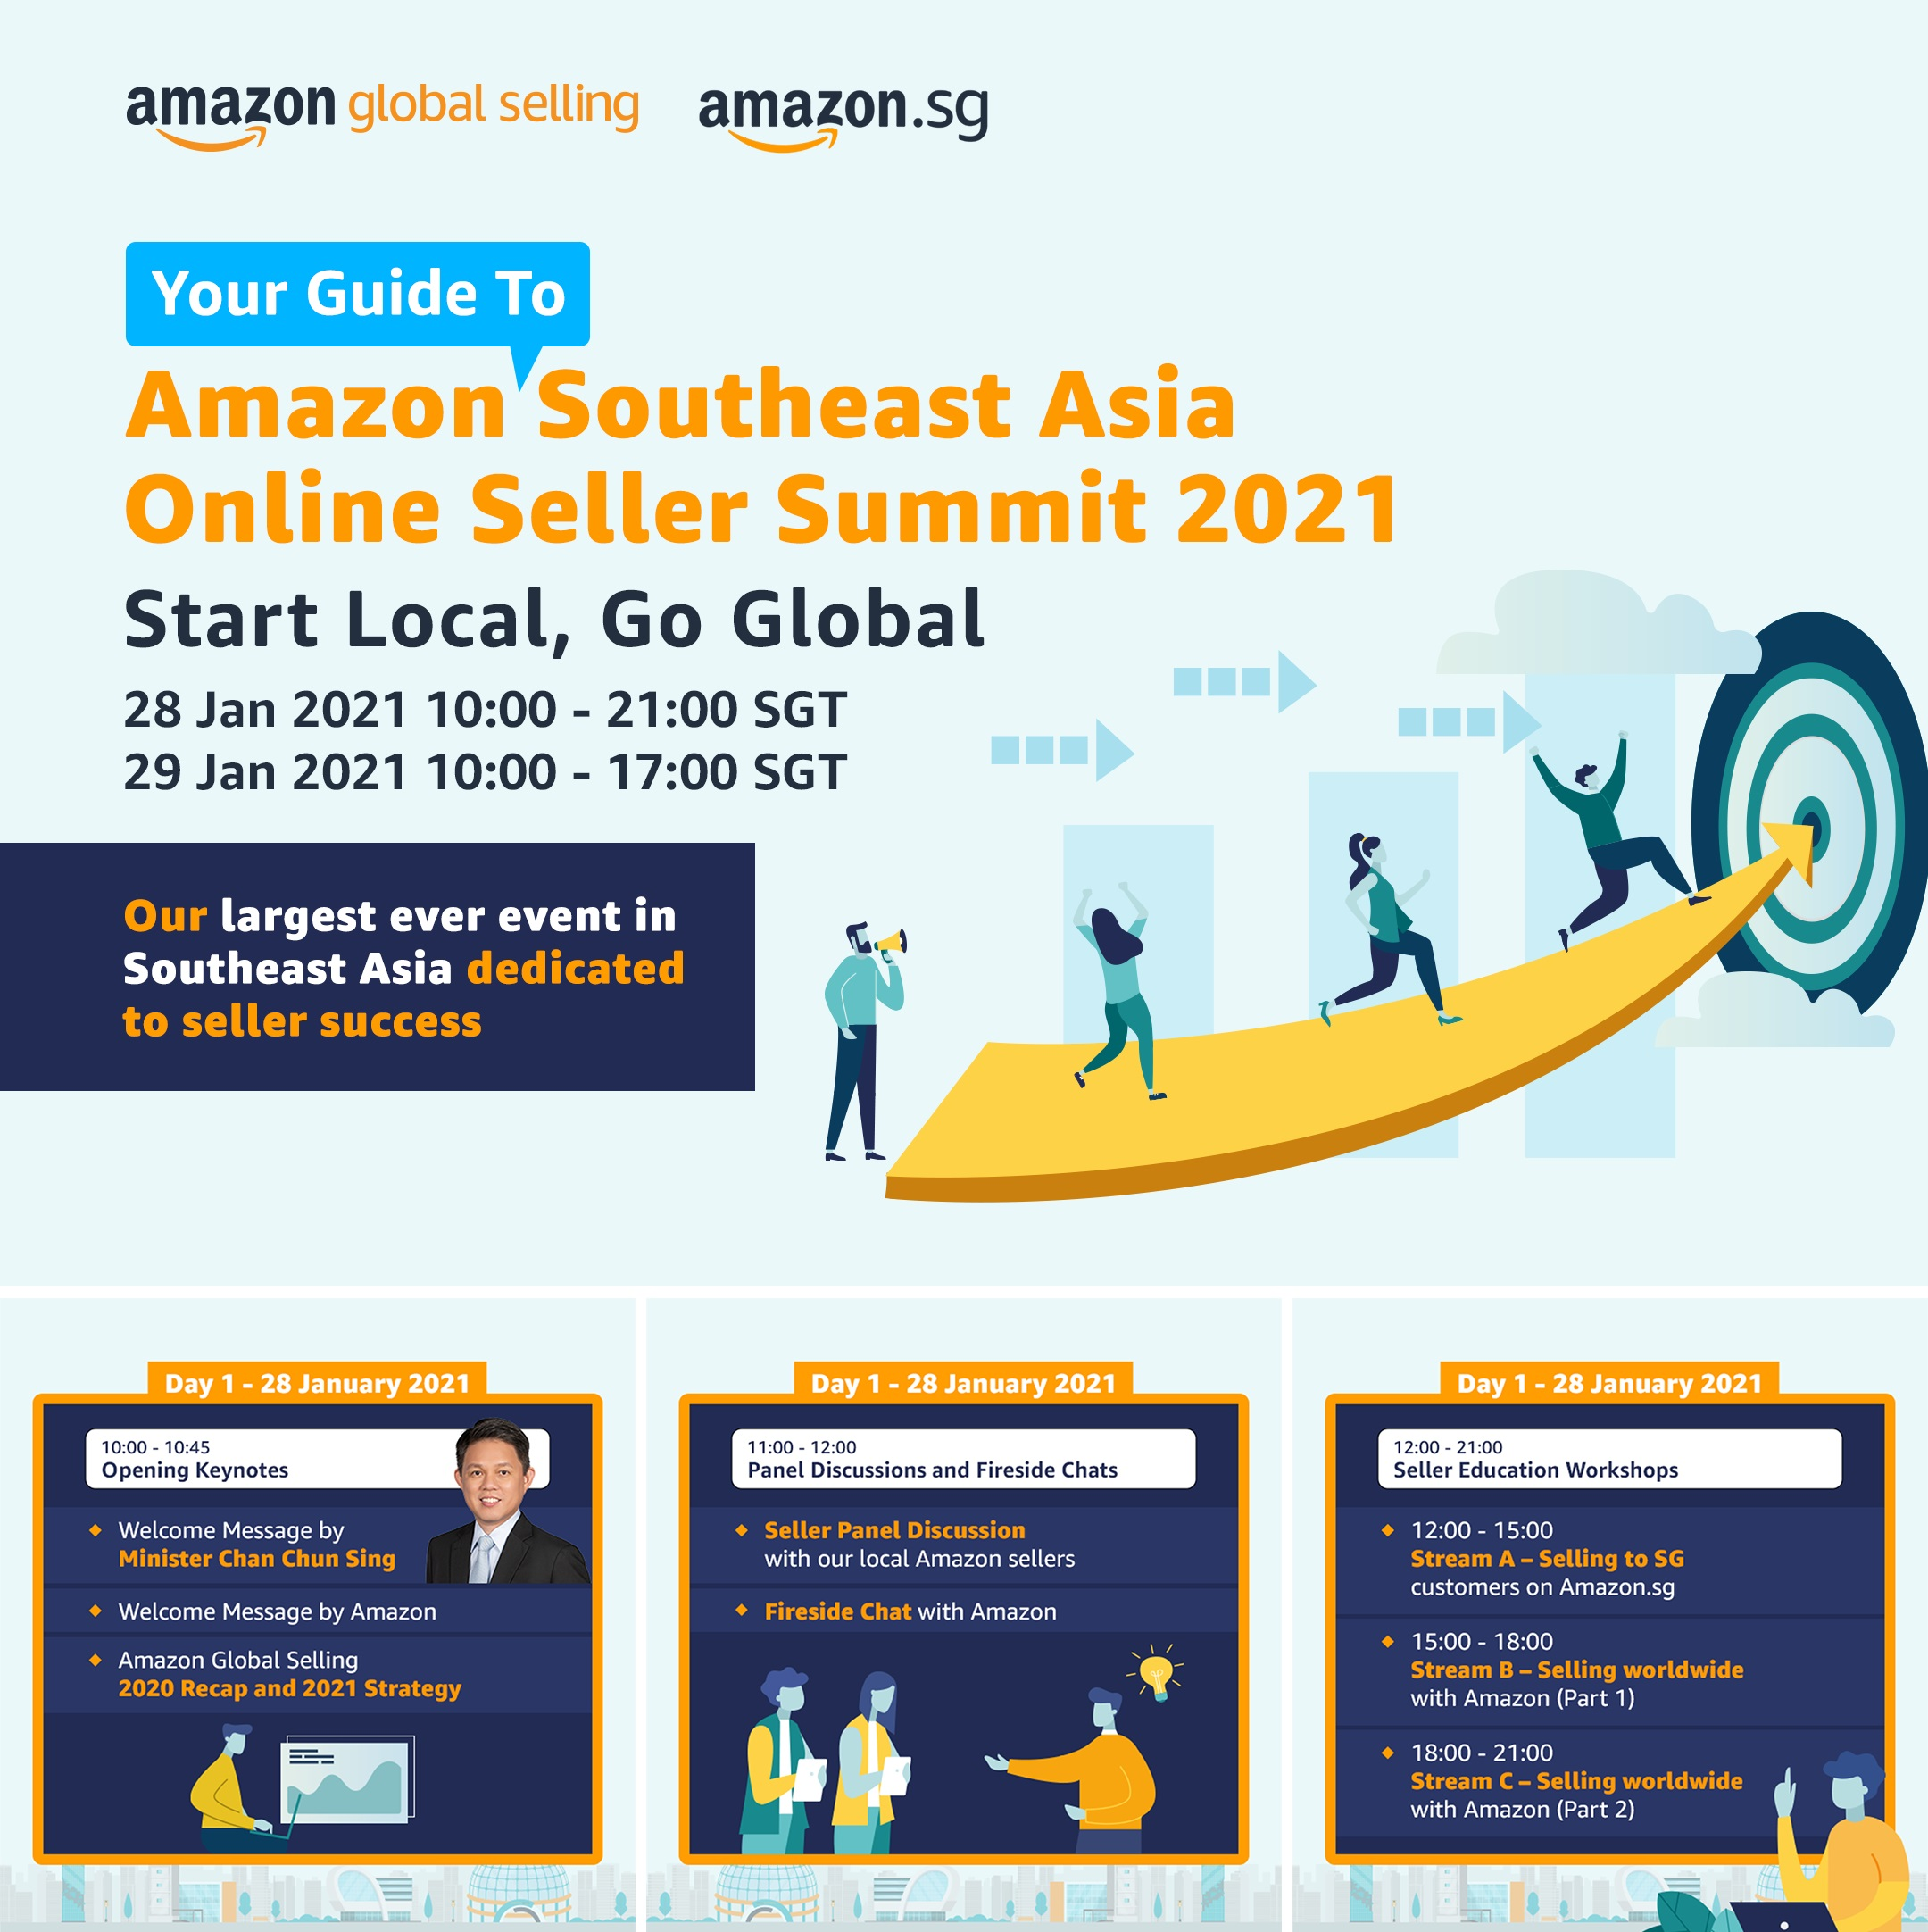 Amazon to host first Southeast Asia Seller Summit for small and medium-sized businesses to Start Local Go Global